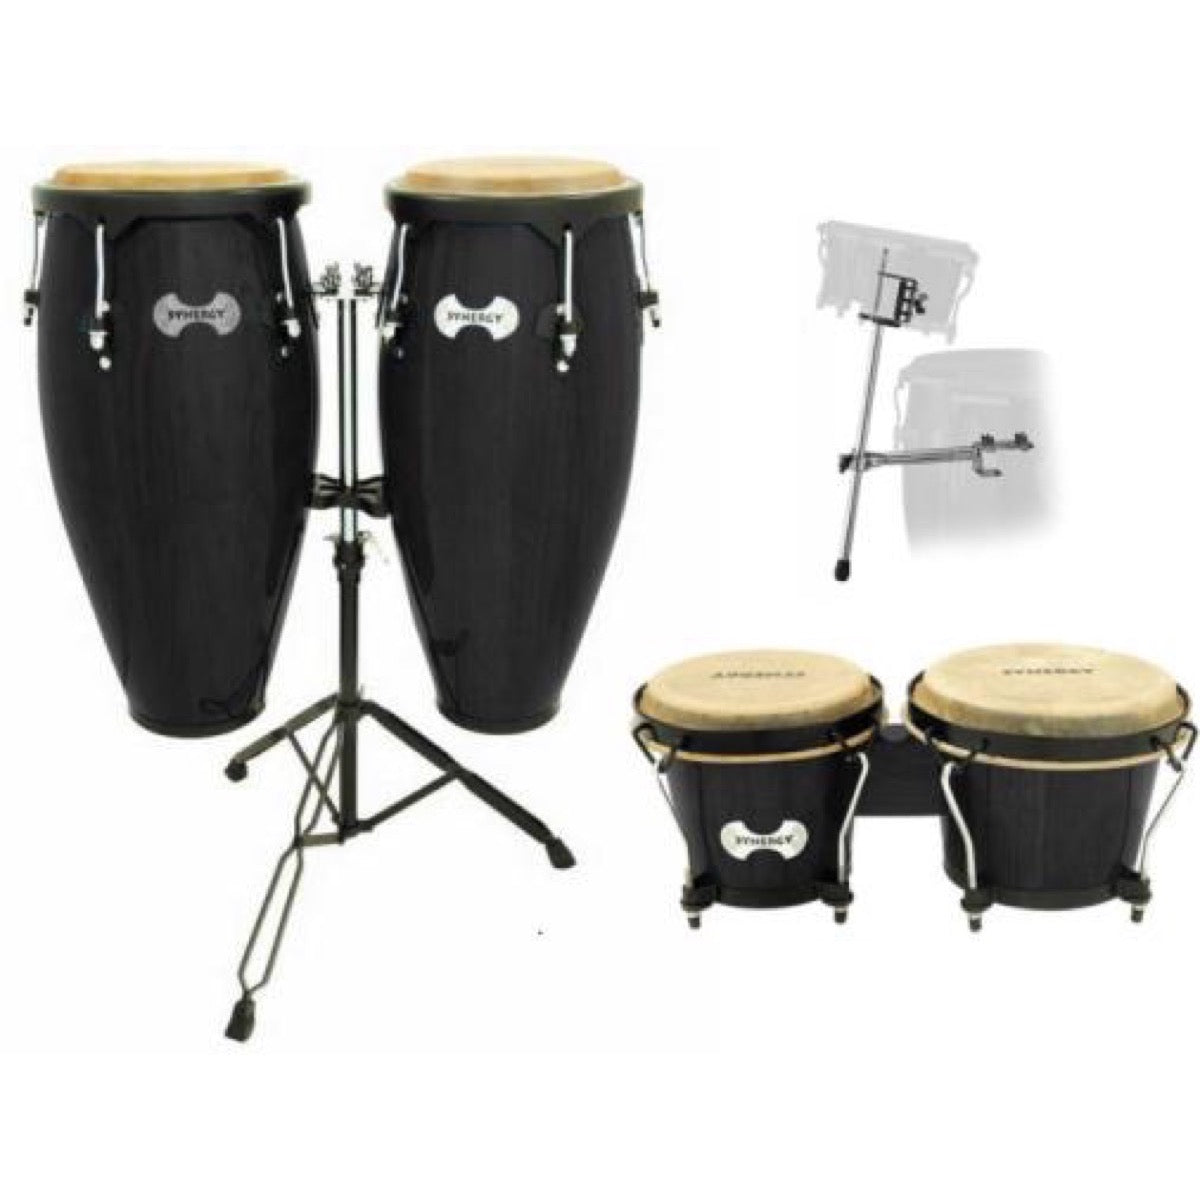 Toca Synergy Congas (with Stand), Tobacco Burst, with Bongos and Bongos Stand